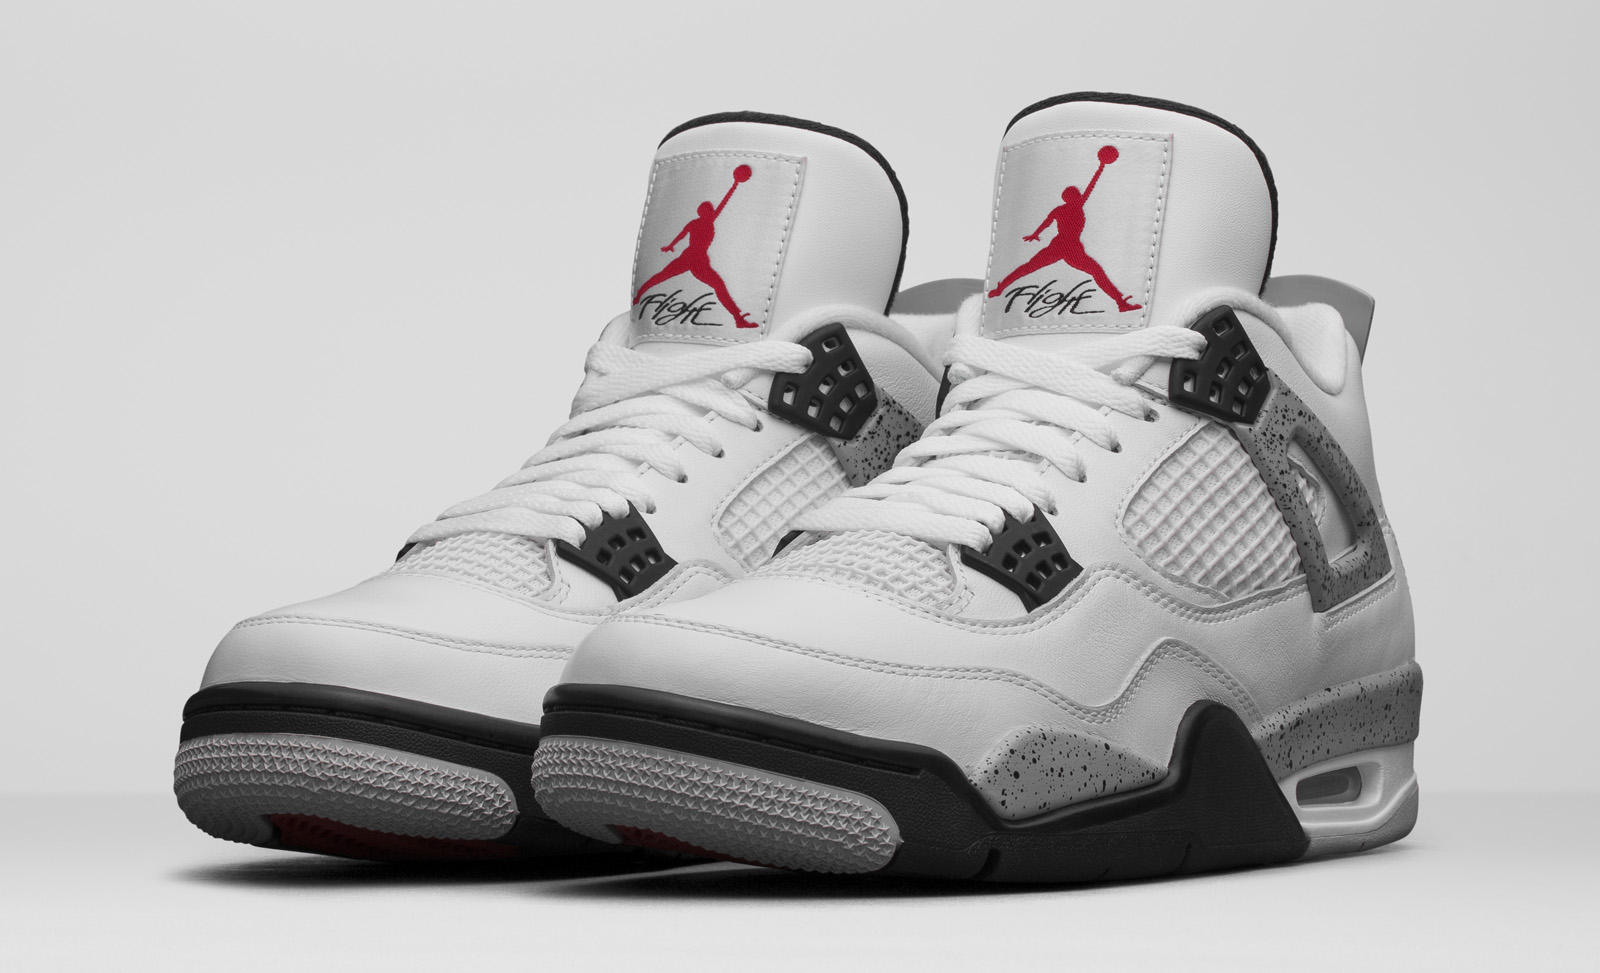 half off 6271f 3e913 air jordan iv retro white cement release date